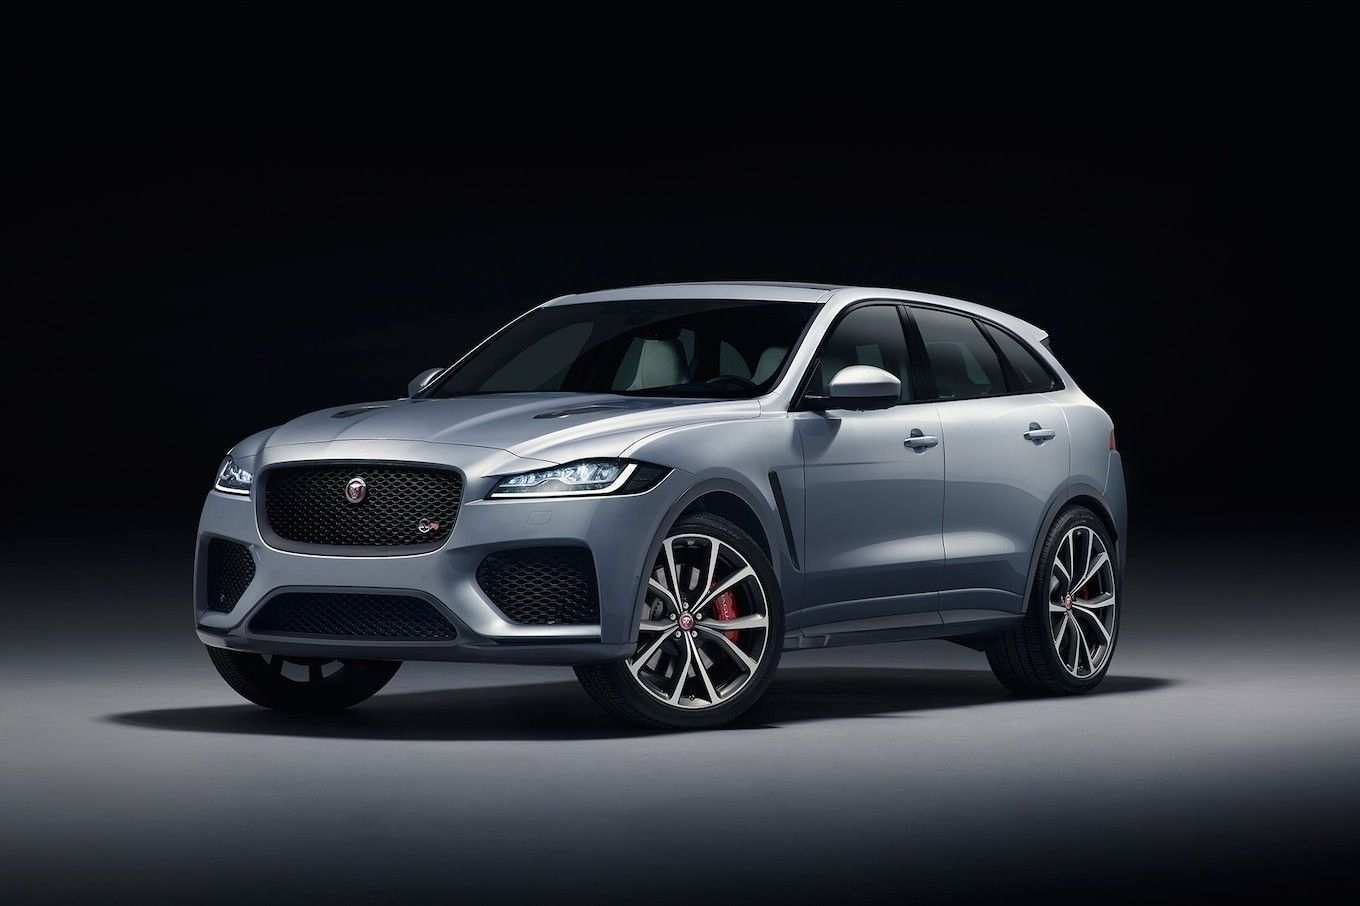 33 All New 2020 Jaguar C X17 Crossover Price